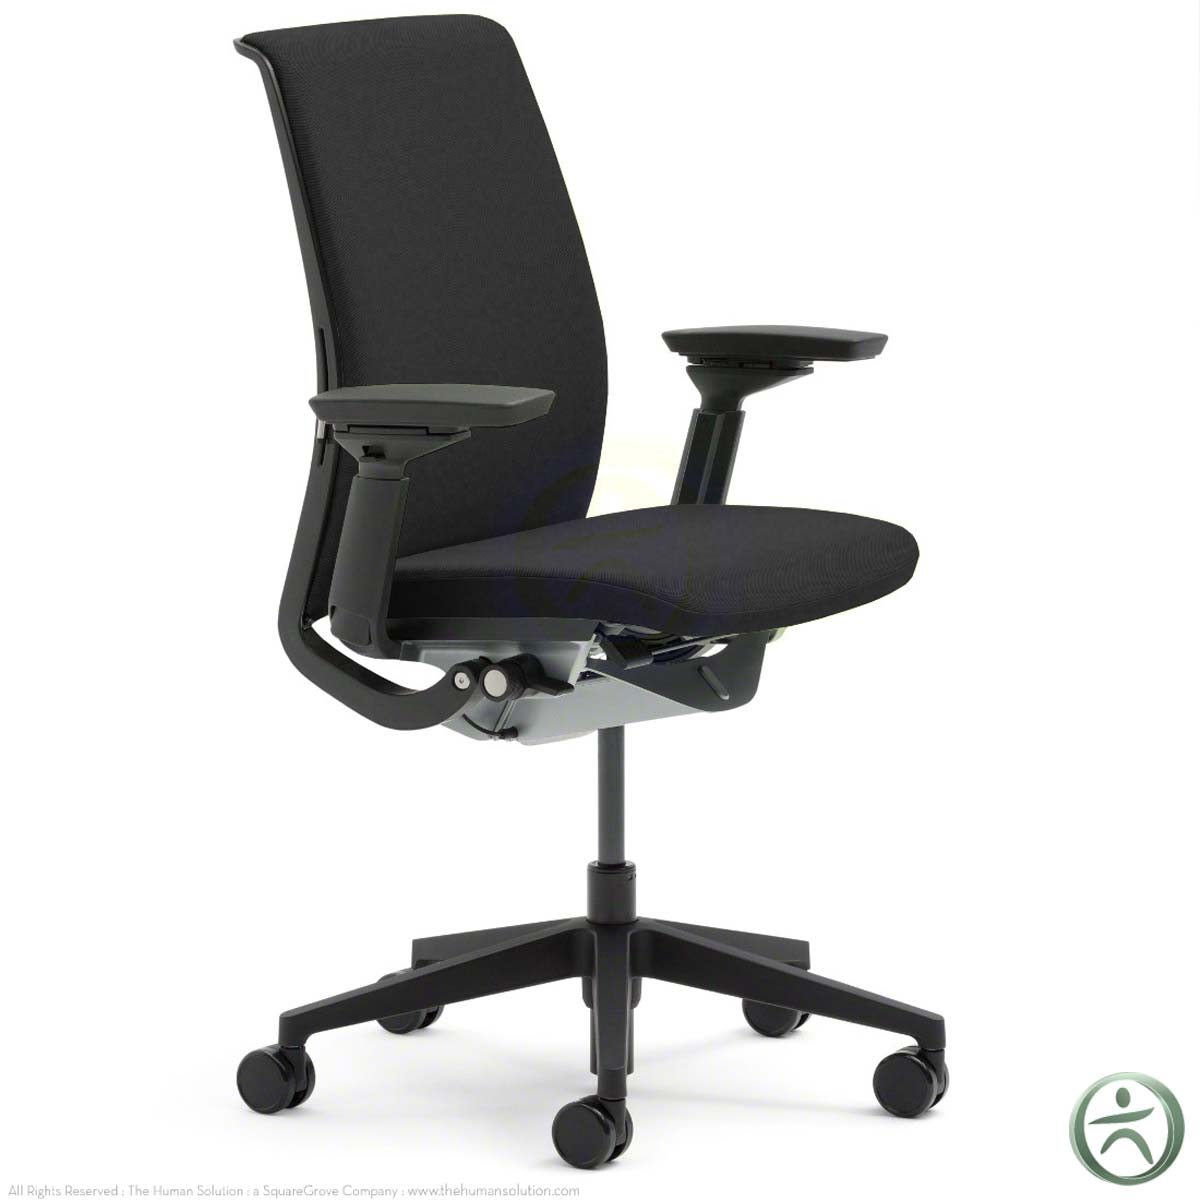 Steelcase Chairs Shop Steelcase Think Chair Base Model